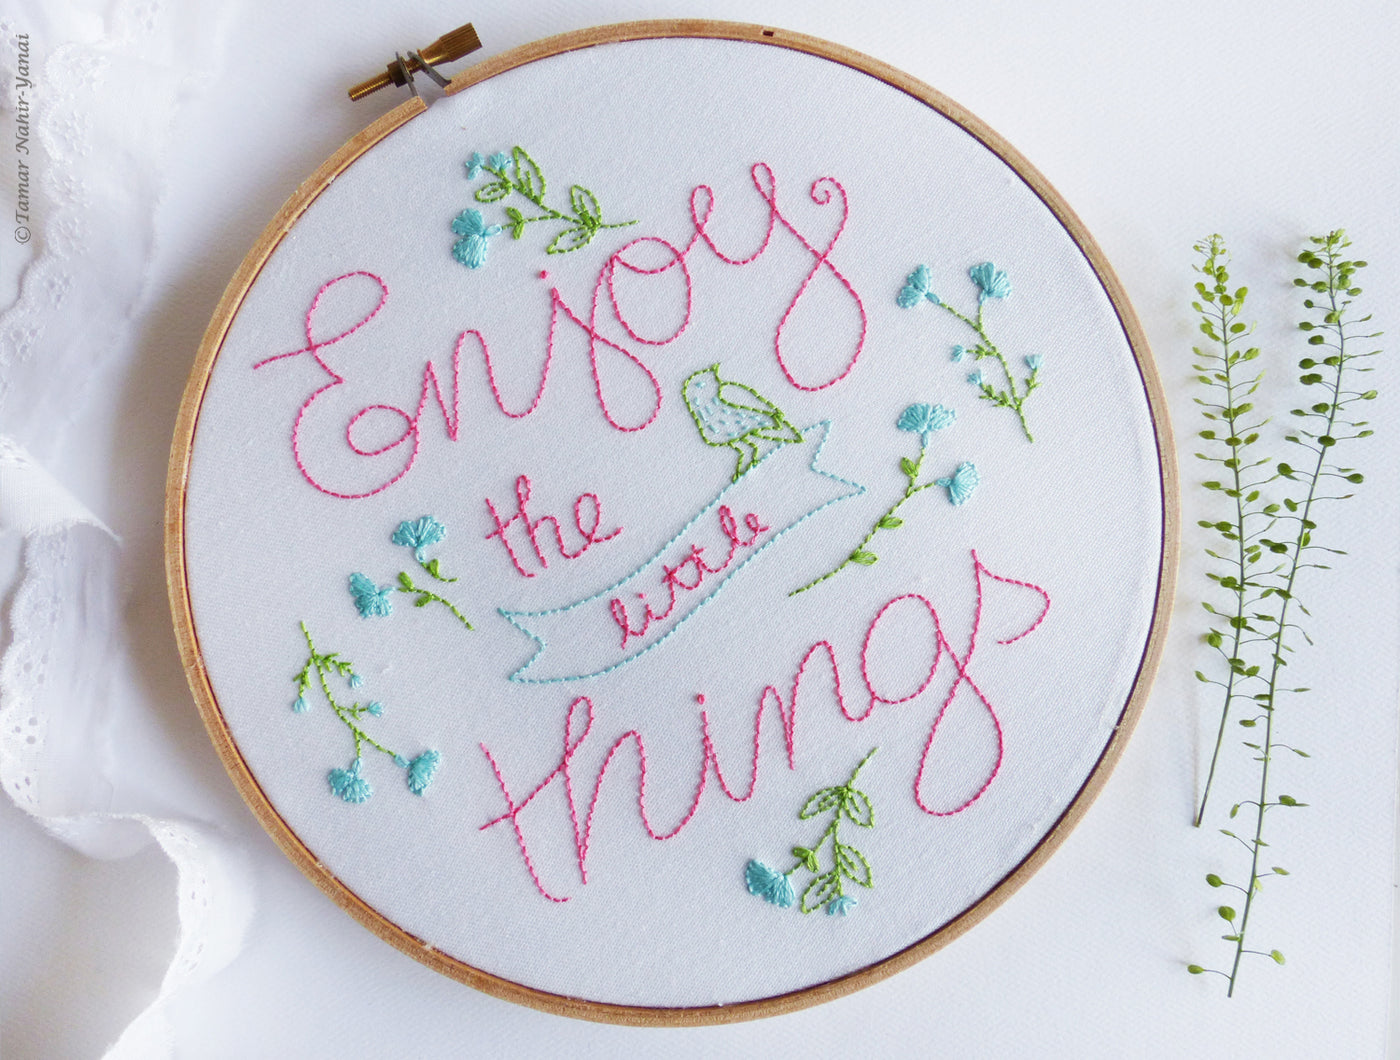 "Enjoy The Little Things 8"" Embroidery Kit"